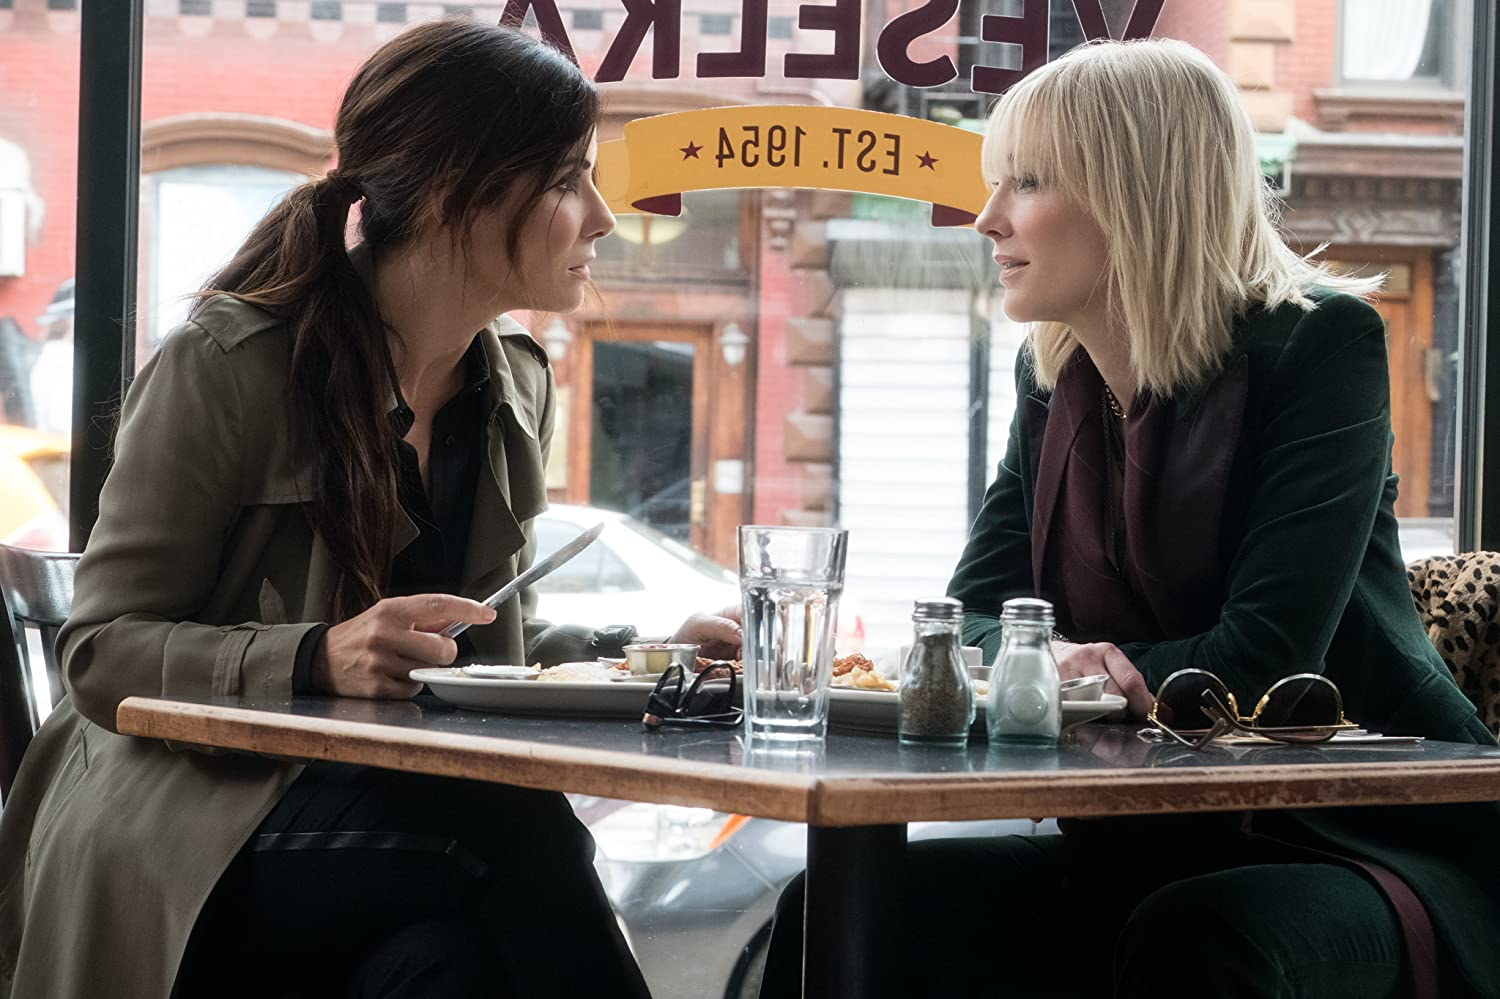 Sandra Bullock and Cate Blanchett in Ocean's 8 (2018)